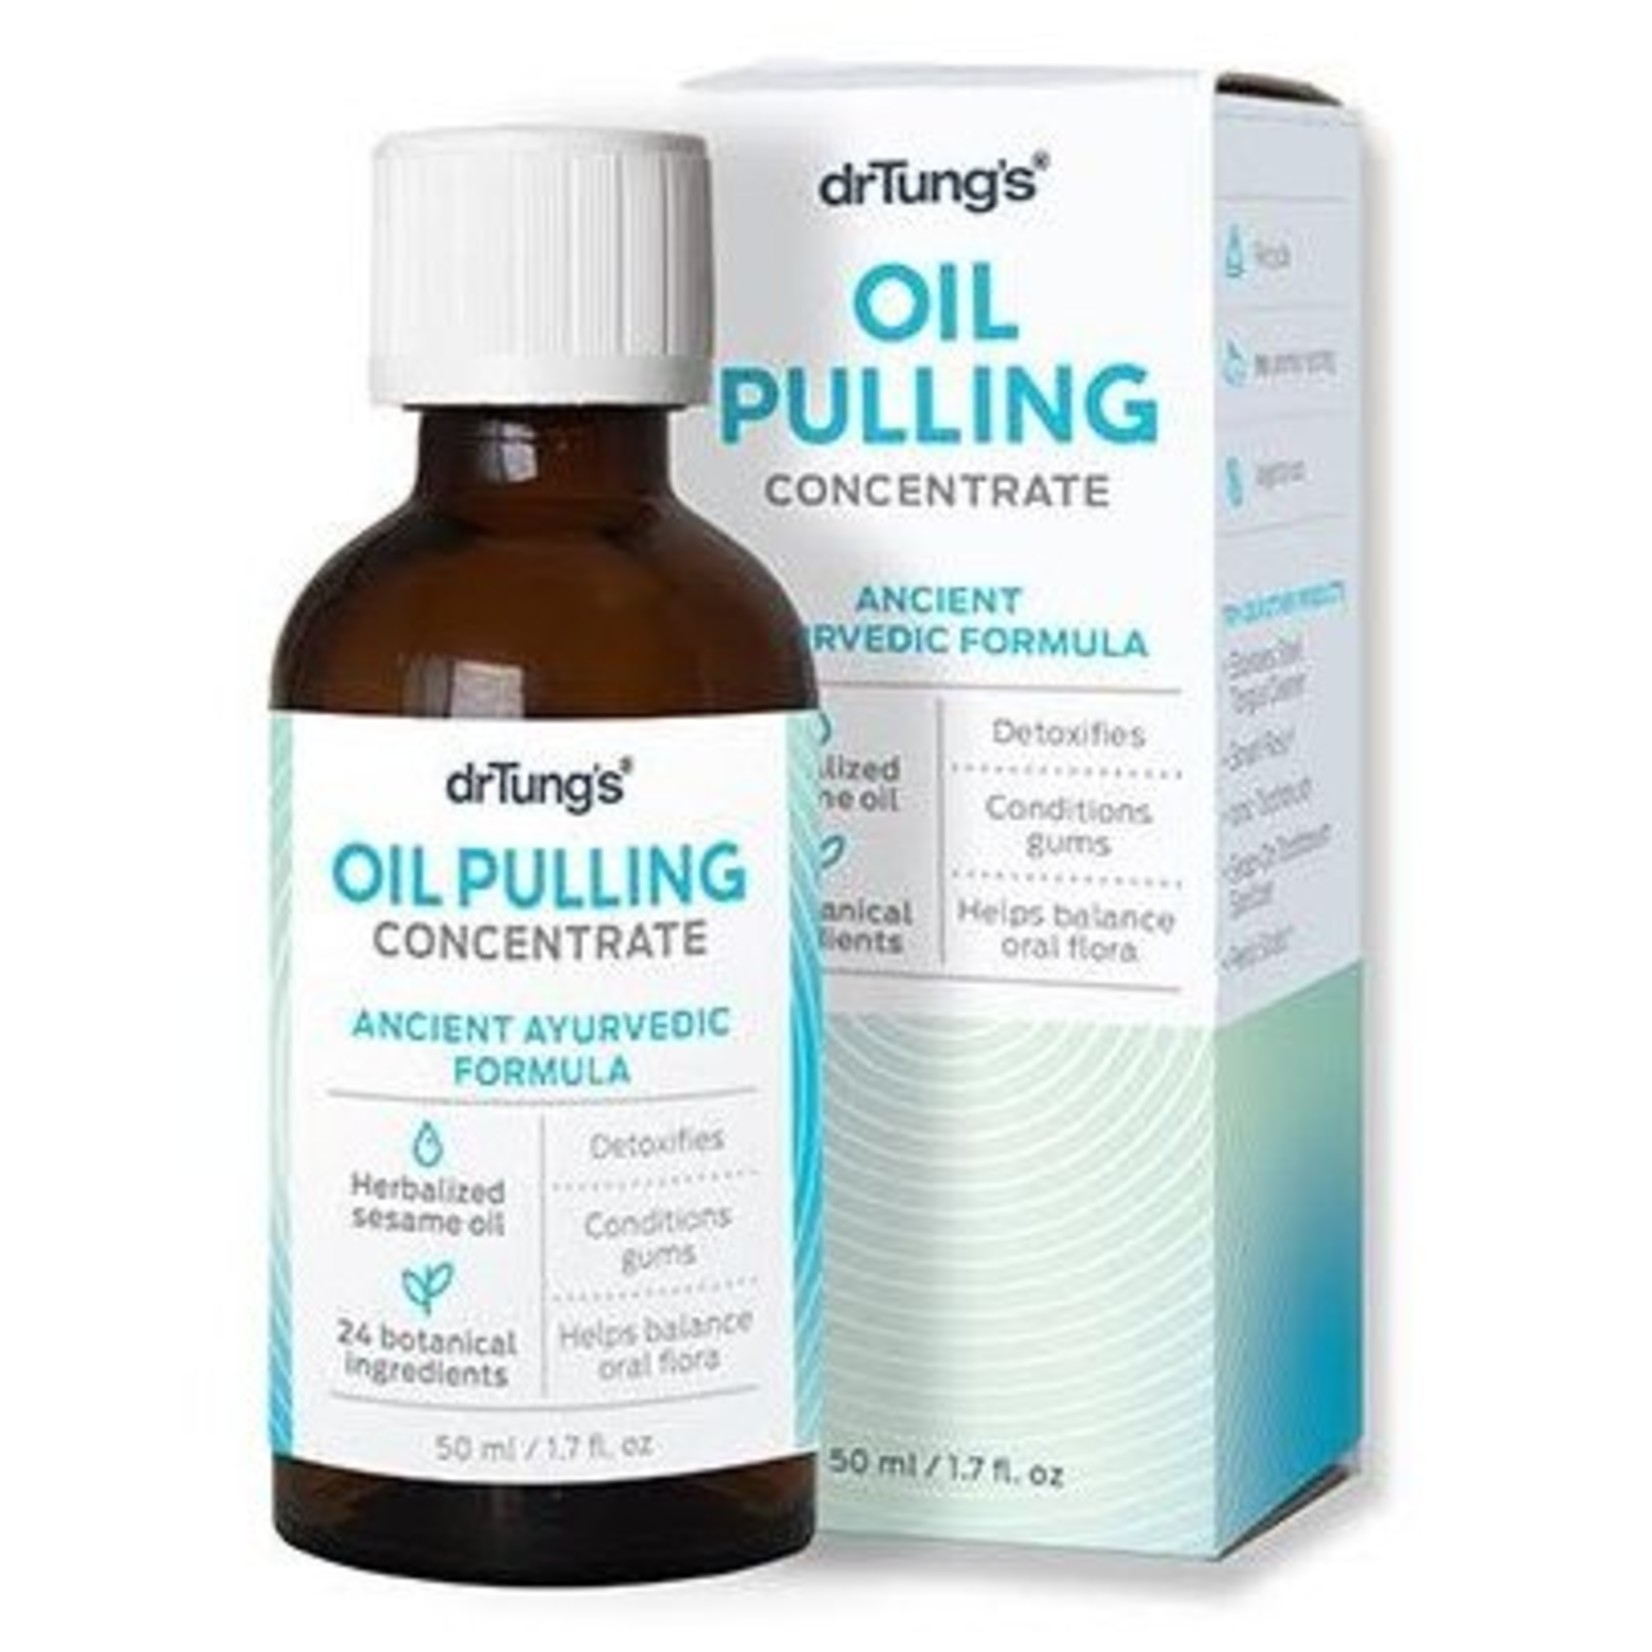 Dr Tungs Dr Tungs Oil Pulling Concentrate 50ml